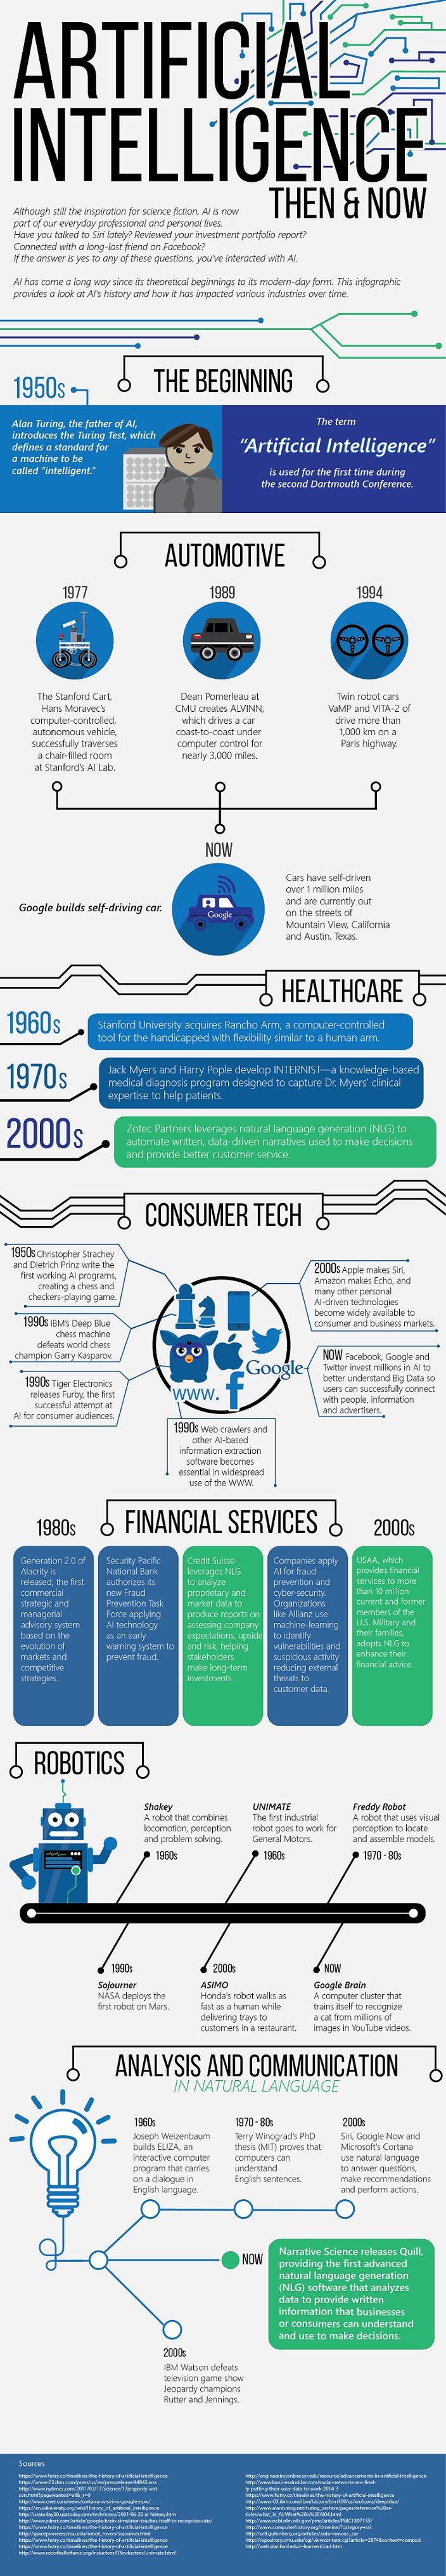 AI Then vs Now infographic by Narrative Science